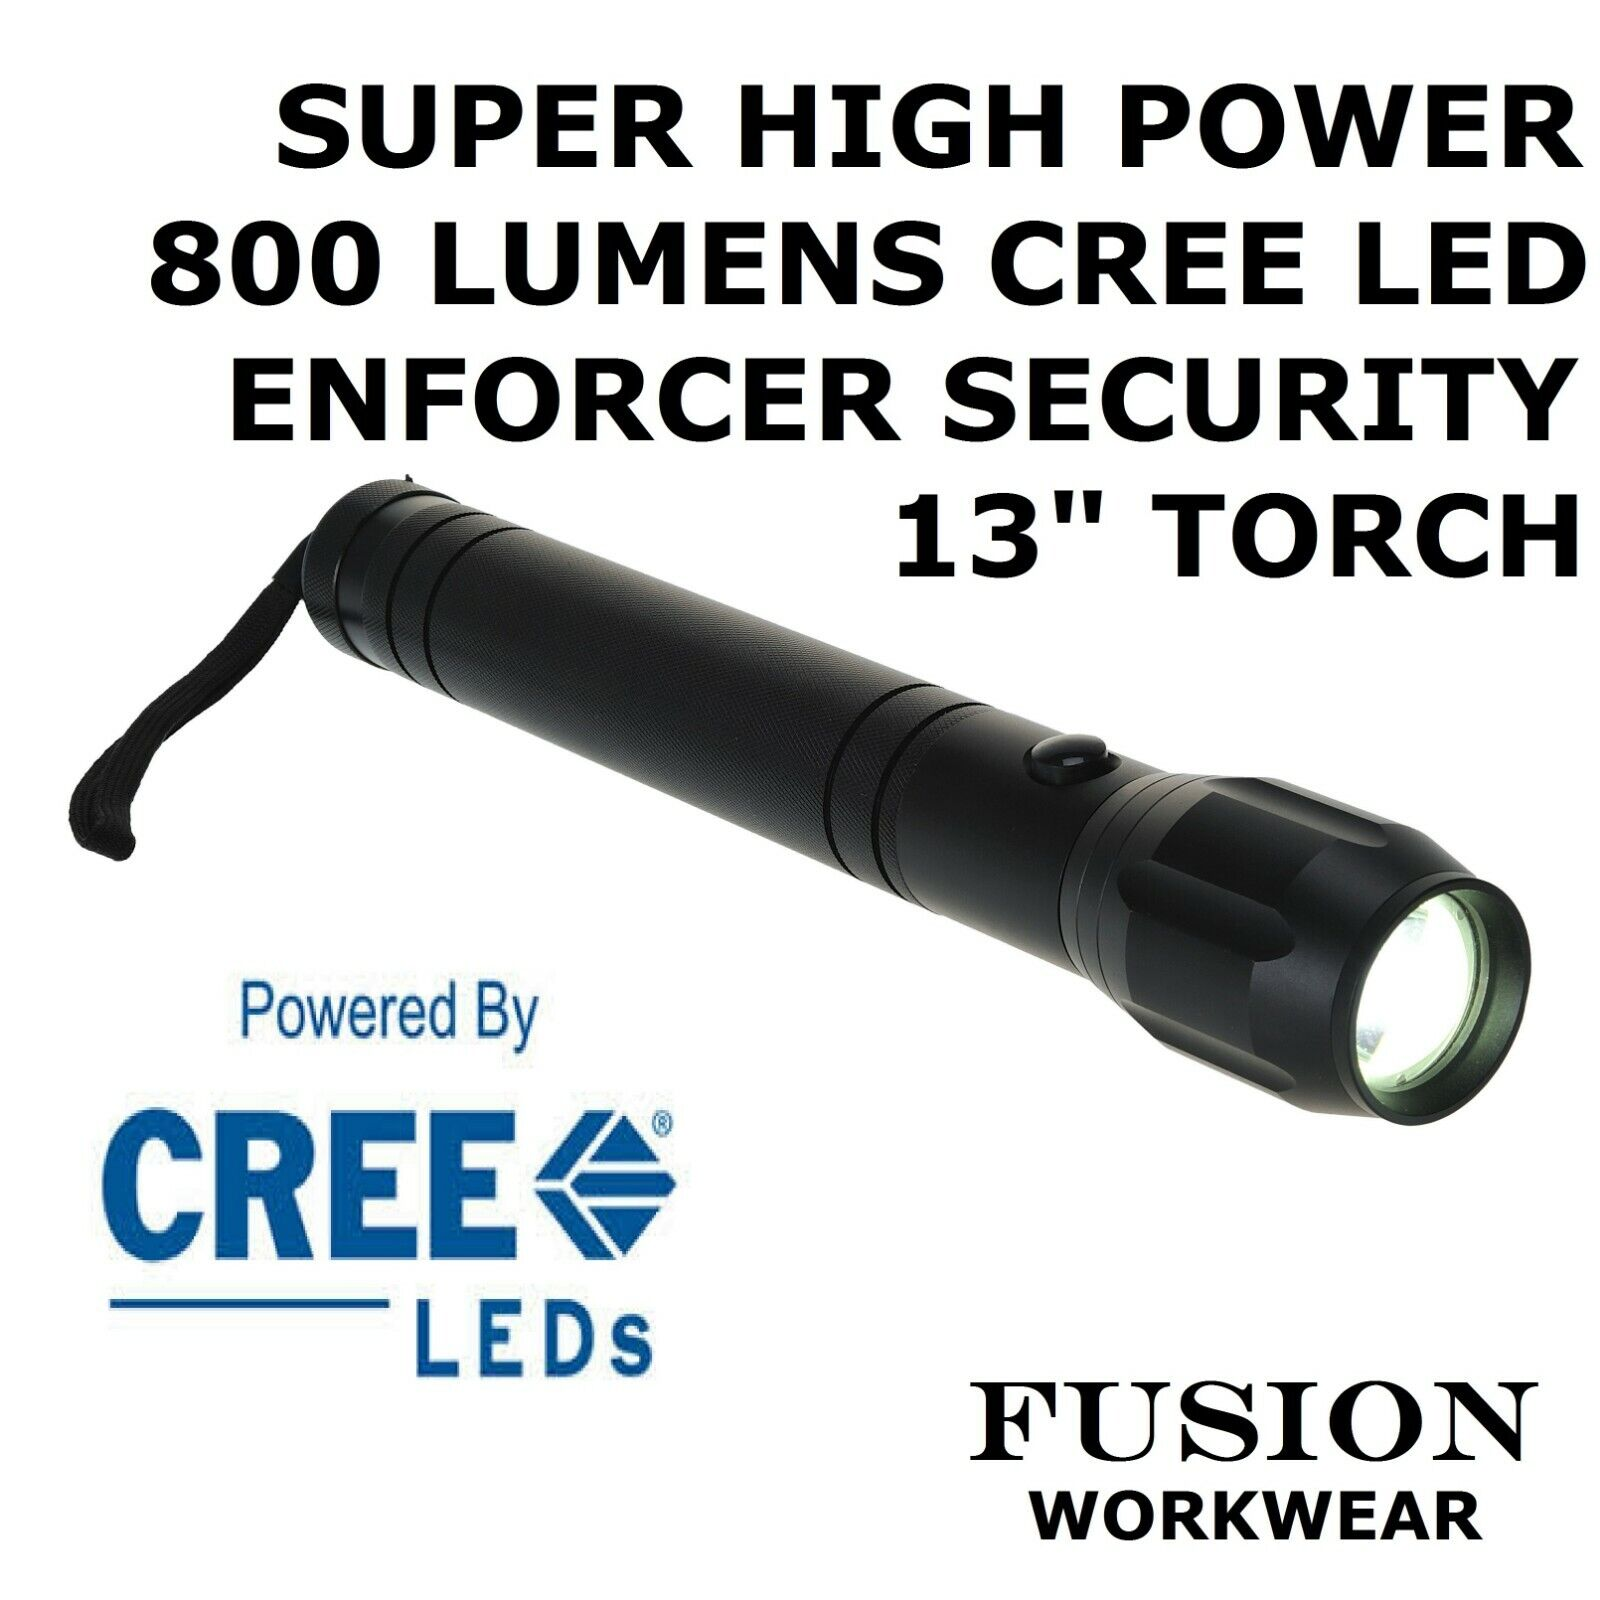 CAMPING  CREE LED TORCH  D CELL BATTERY POWER,800 LUMENS, LITE ALUMINIUM MAG BODY  no hesitation!buy now!